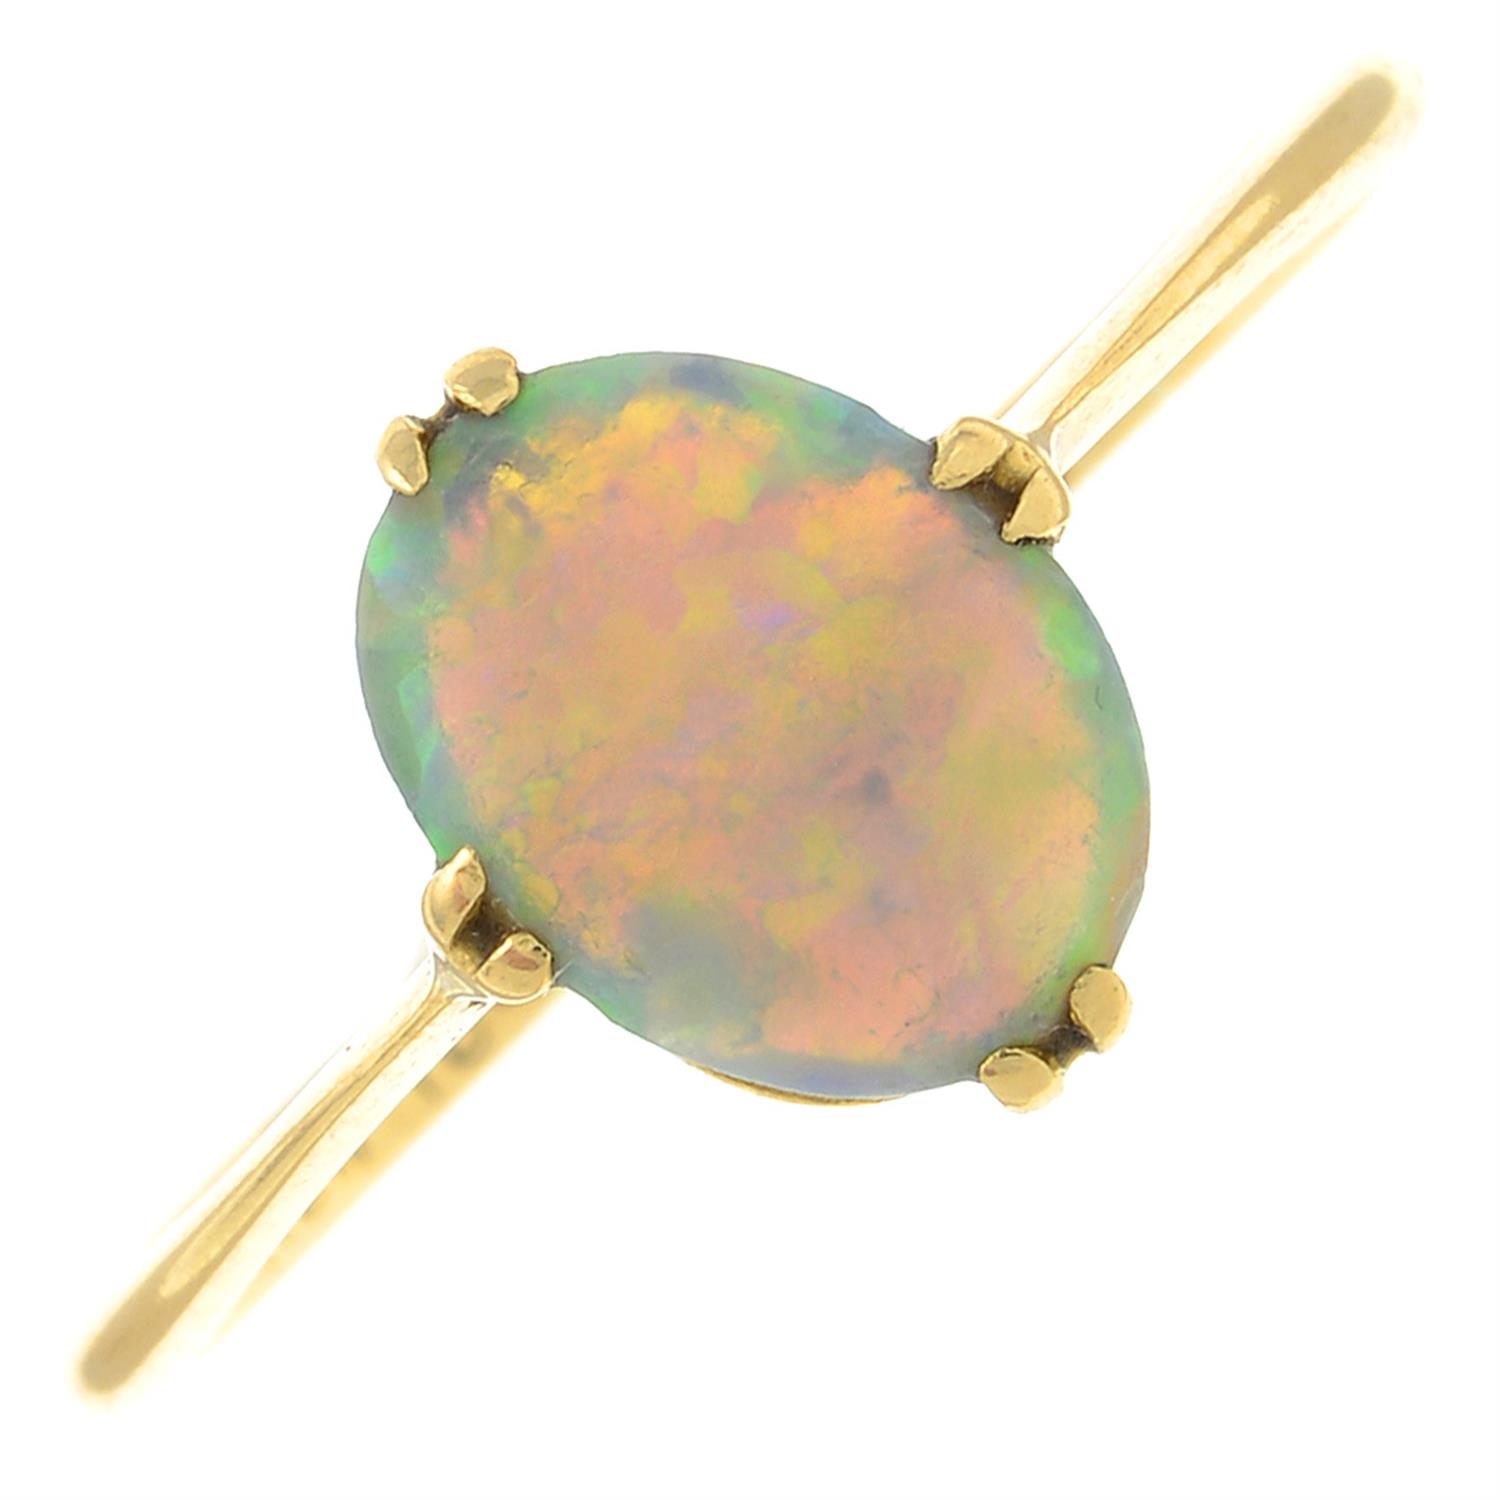 An early 20th century 18ct gold opal single-stone ring.